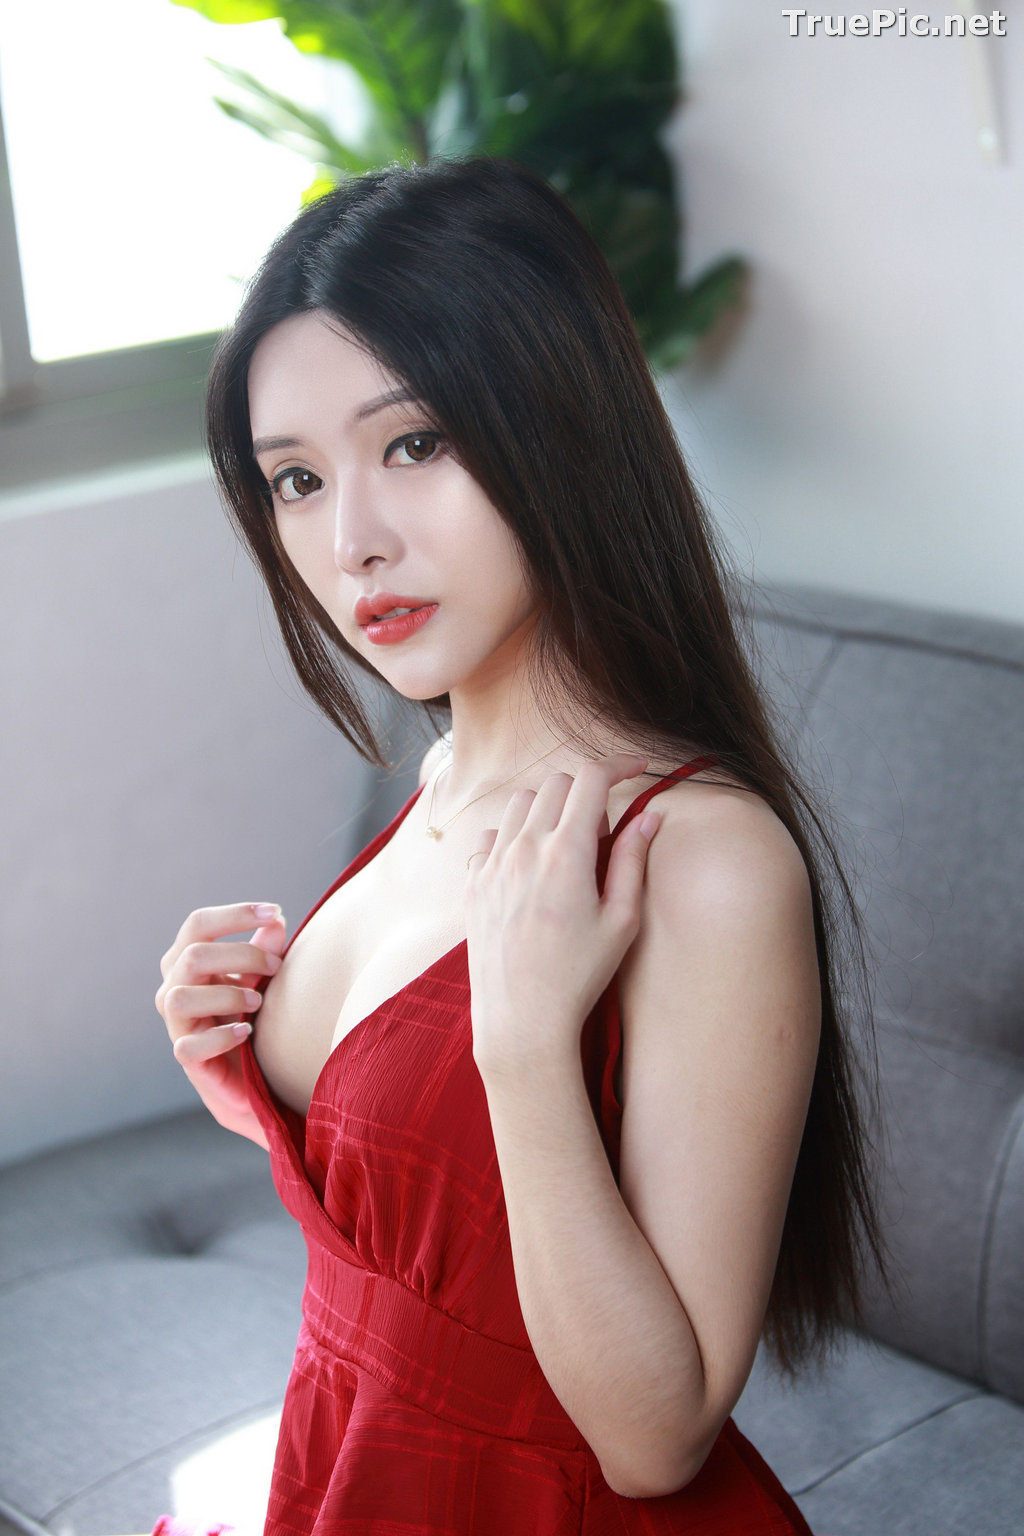 Image Taiwanese Model – 莊舒潔 (ViVi) – Sexy and Beautiful Christmas Girl - TruePic.net - Picture-7